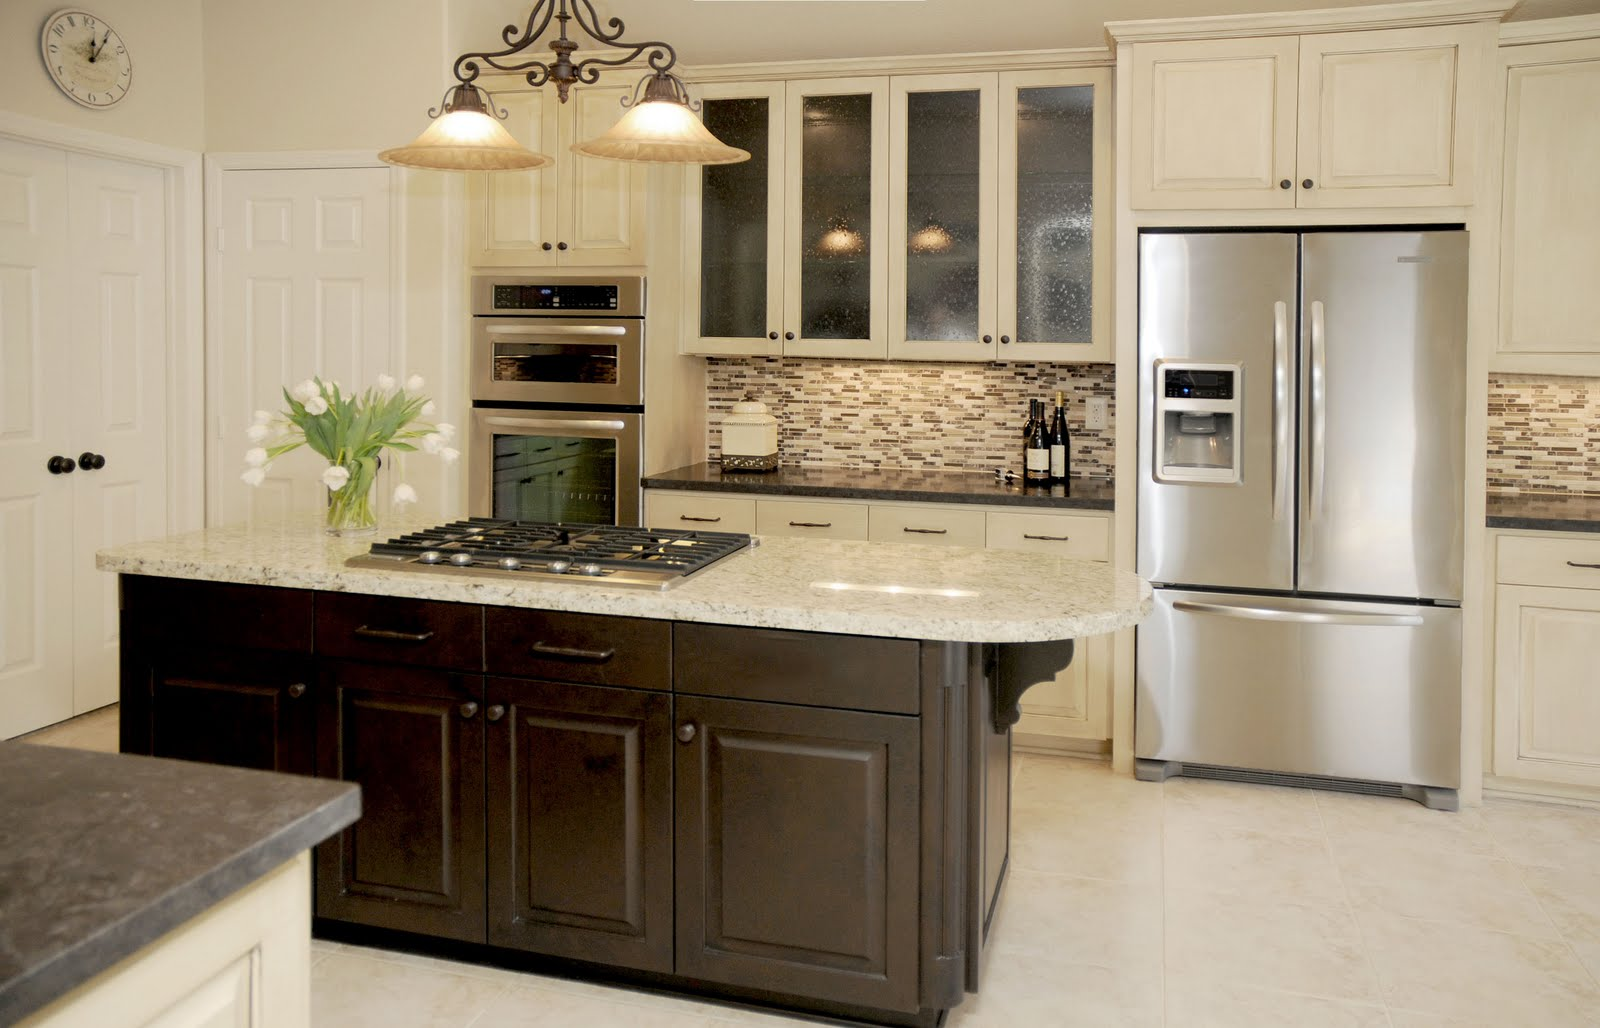 Galley kitchen remodels before and after kitchen design for Kitchen remodel ideas